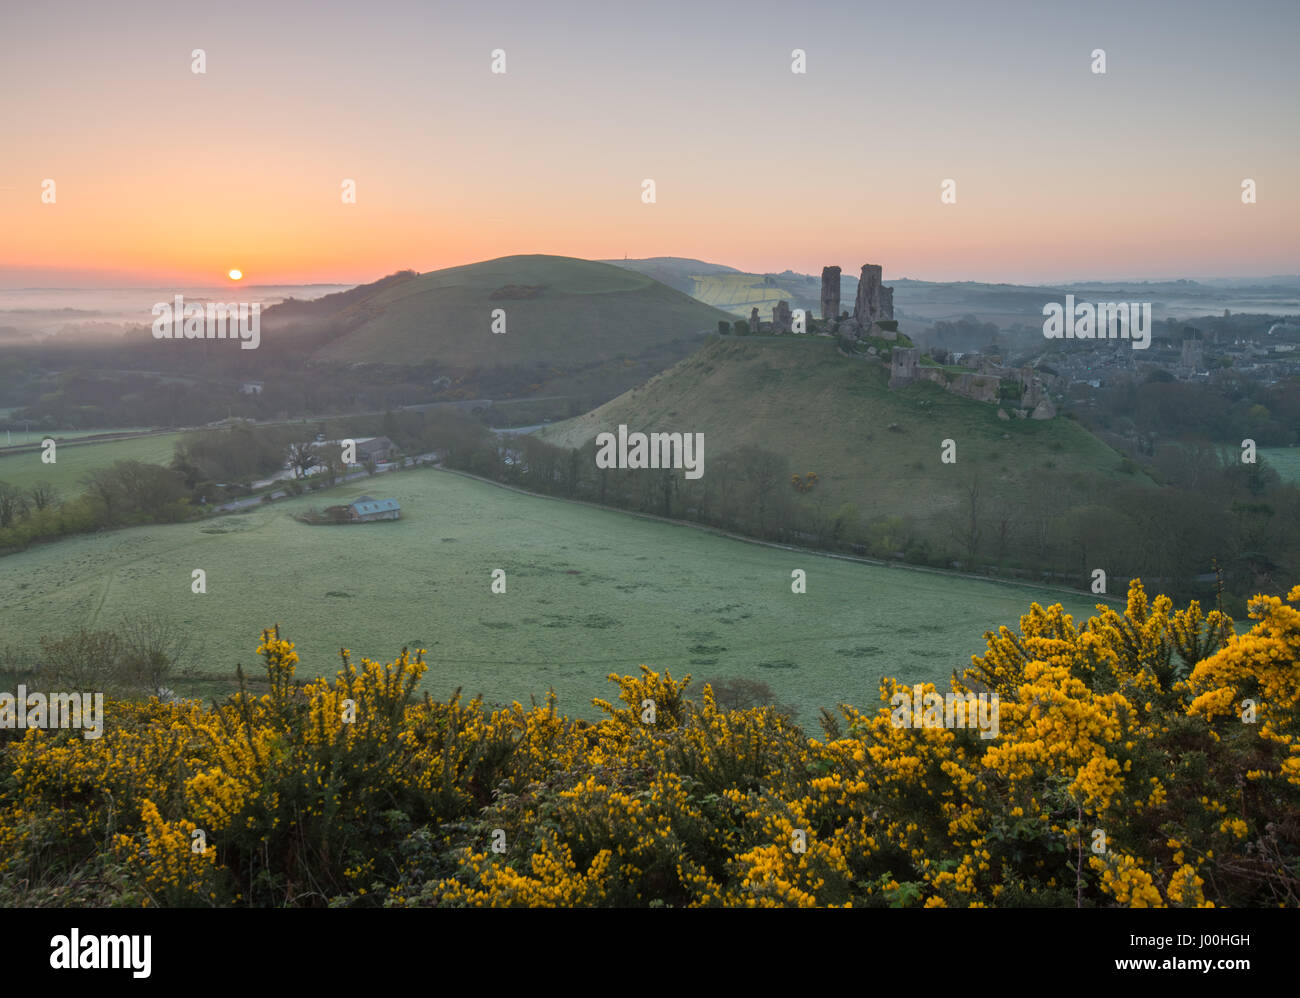 Corfe Castle, Dorset, UK. 8. April 2017. Glorreiche nebligen knackig Sonnenaufgang über die Isle of Purbeck Stockbild